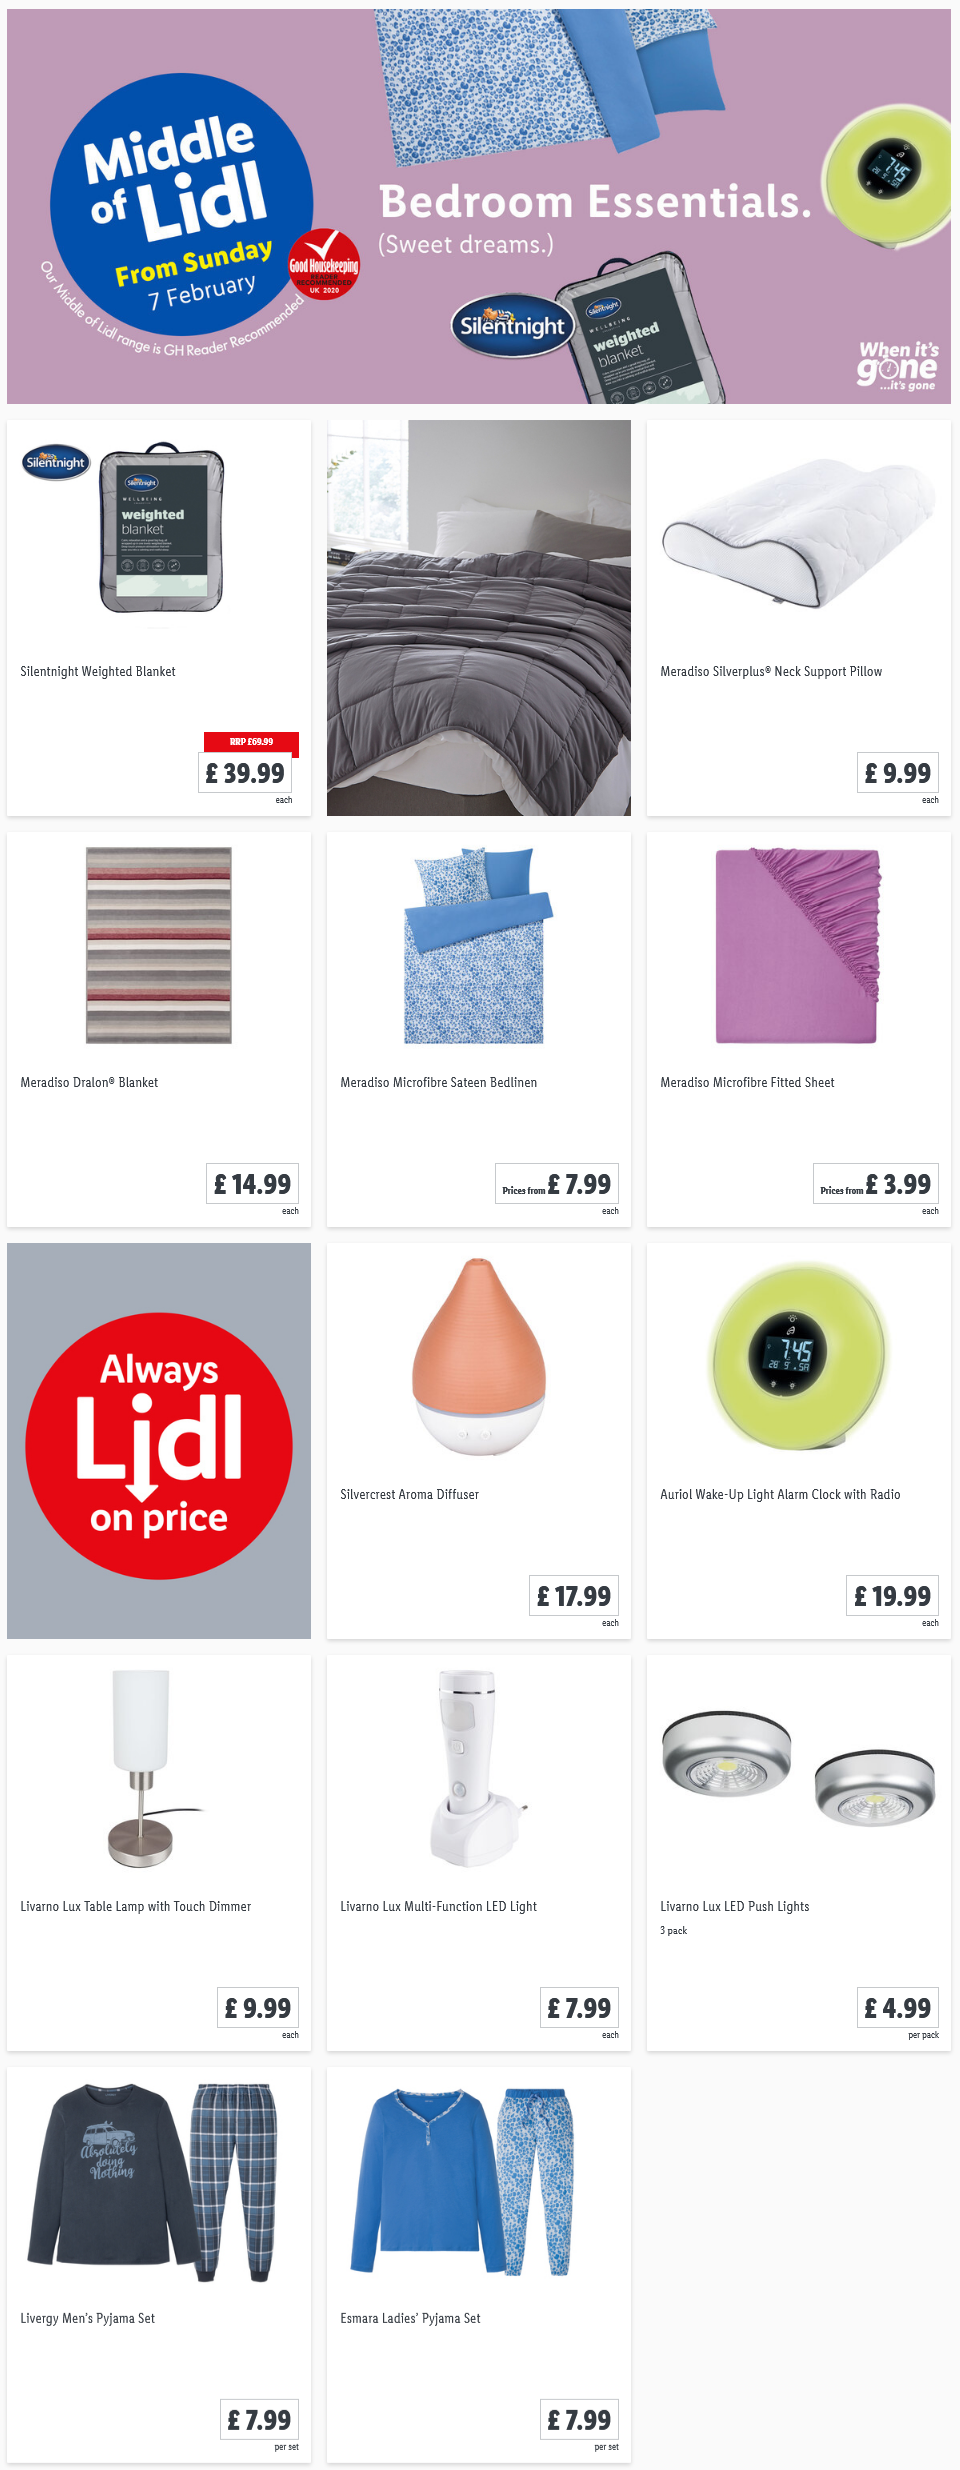 LiDL Bedroom Essentials from 7th February 2021 LiDL Sunday Offers